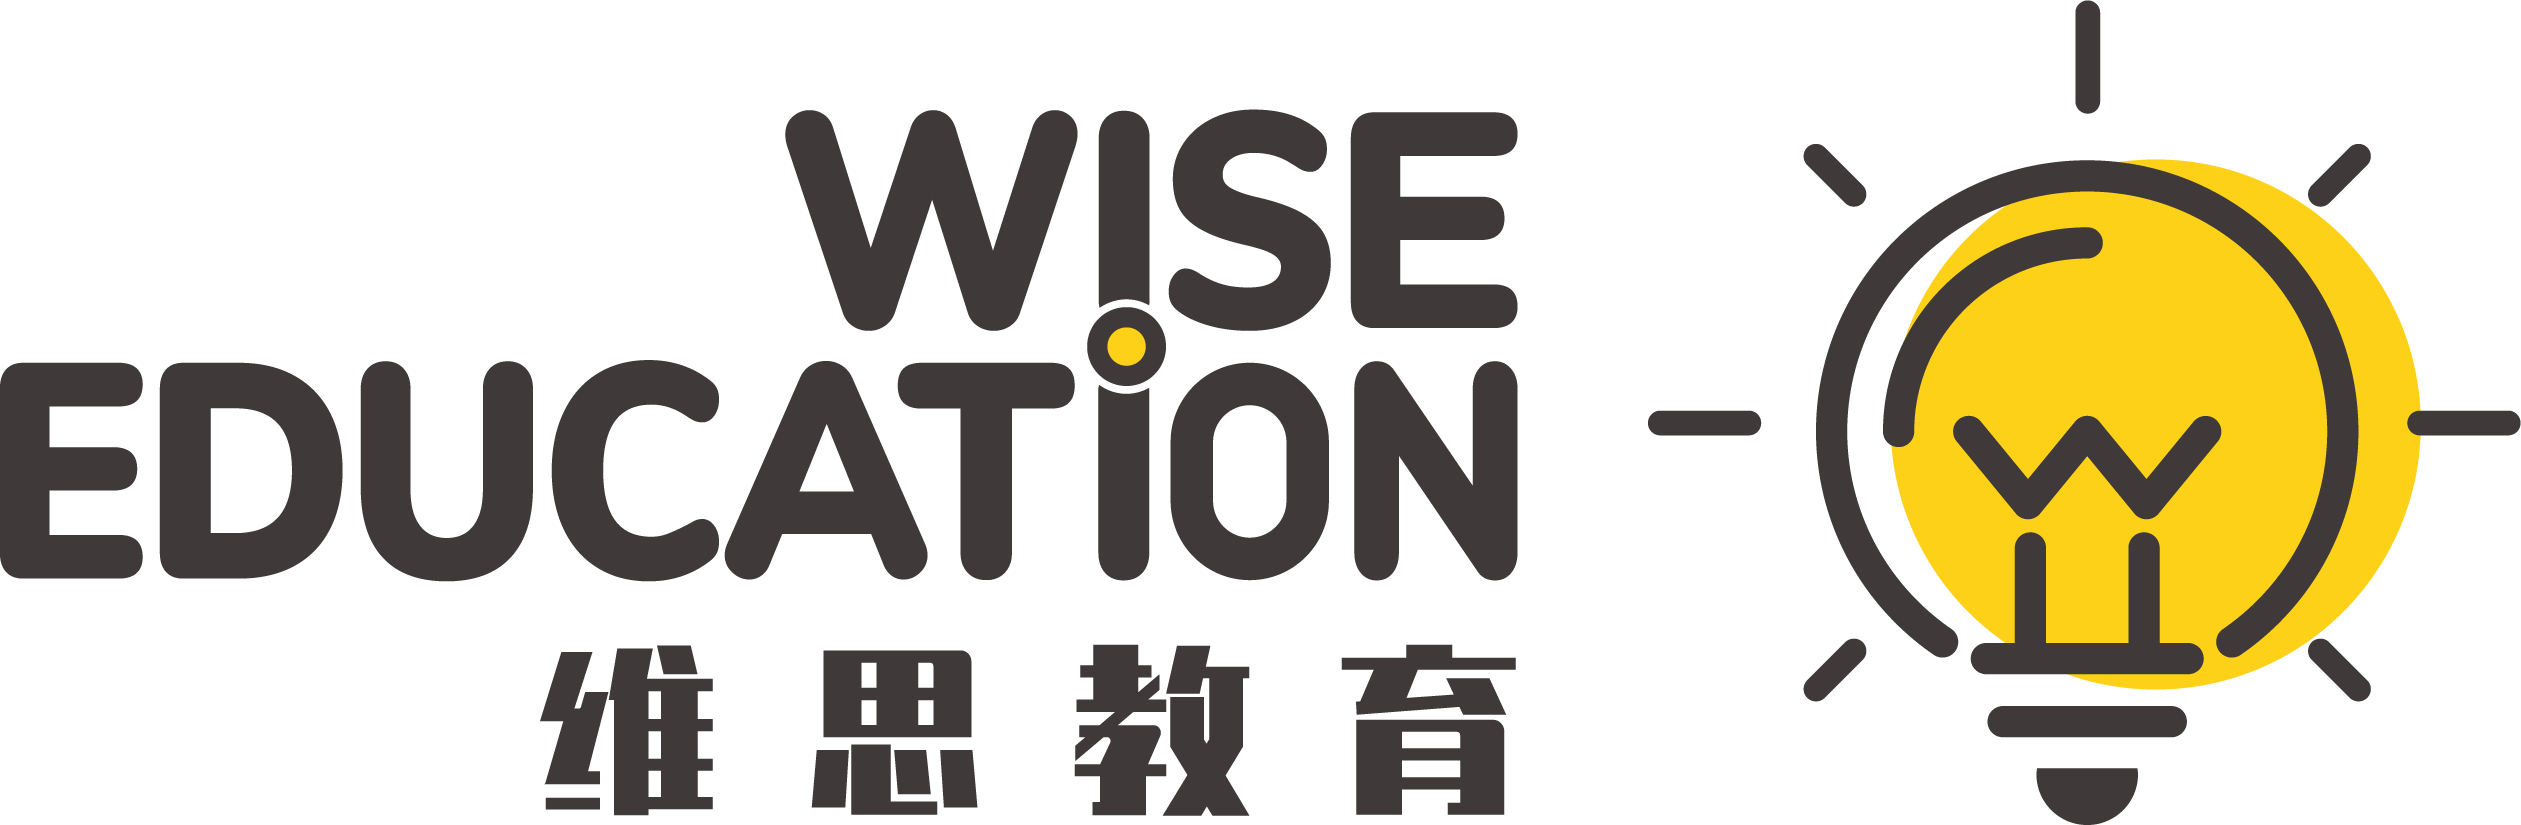 Wise Education 维思教育